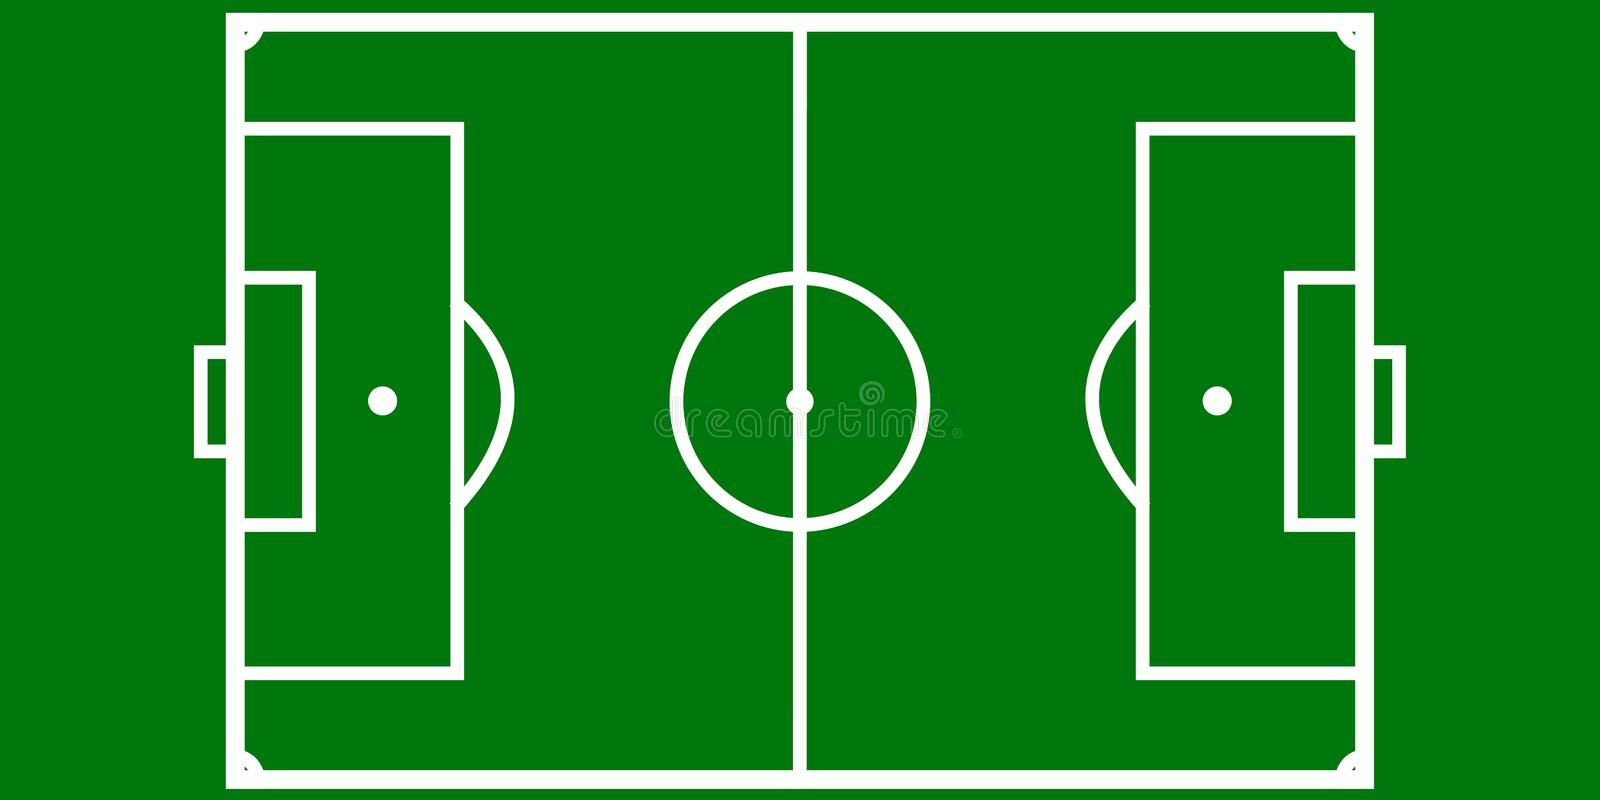 football pitch layout stock vector  illustration of color